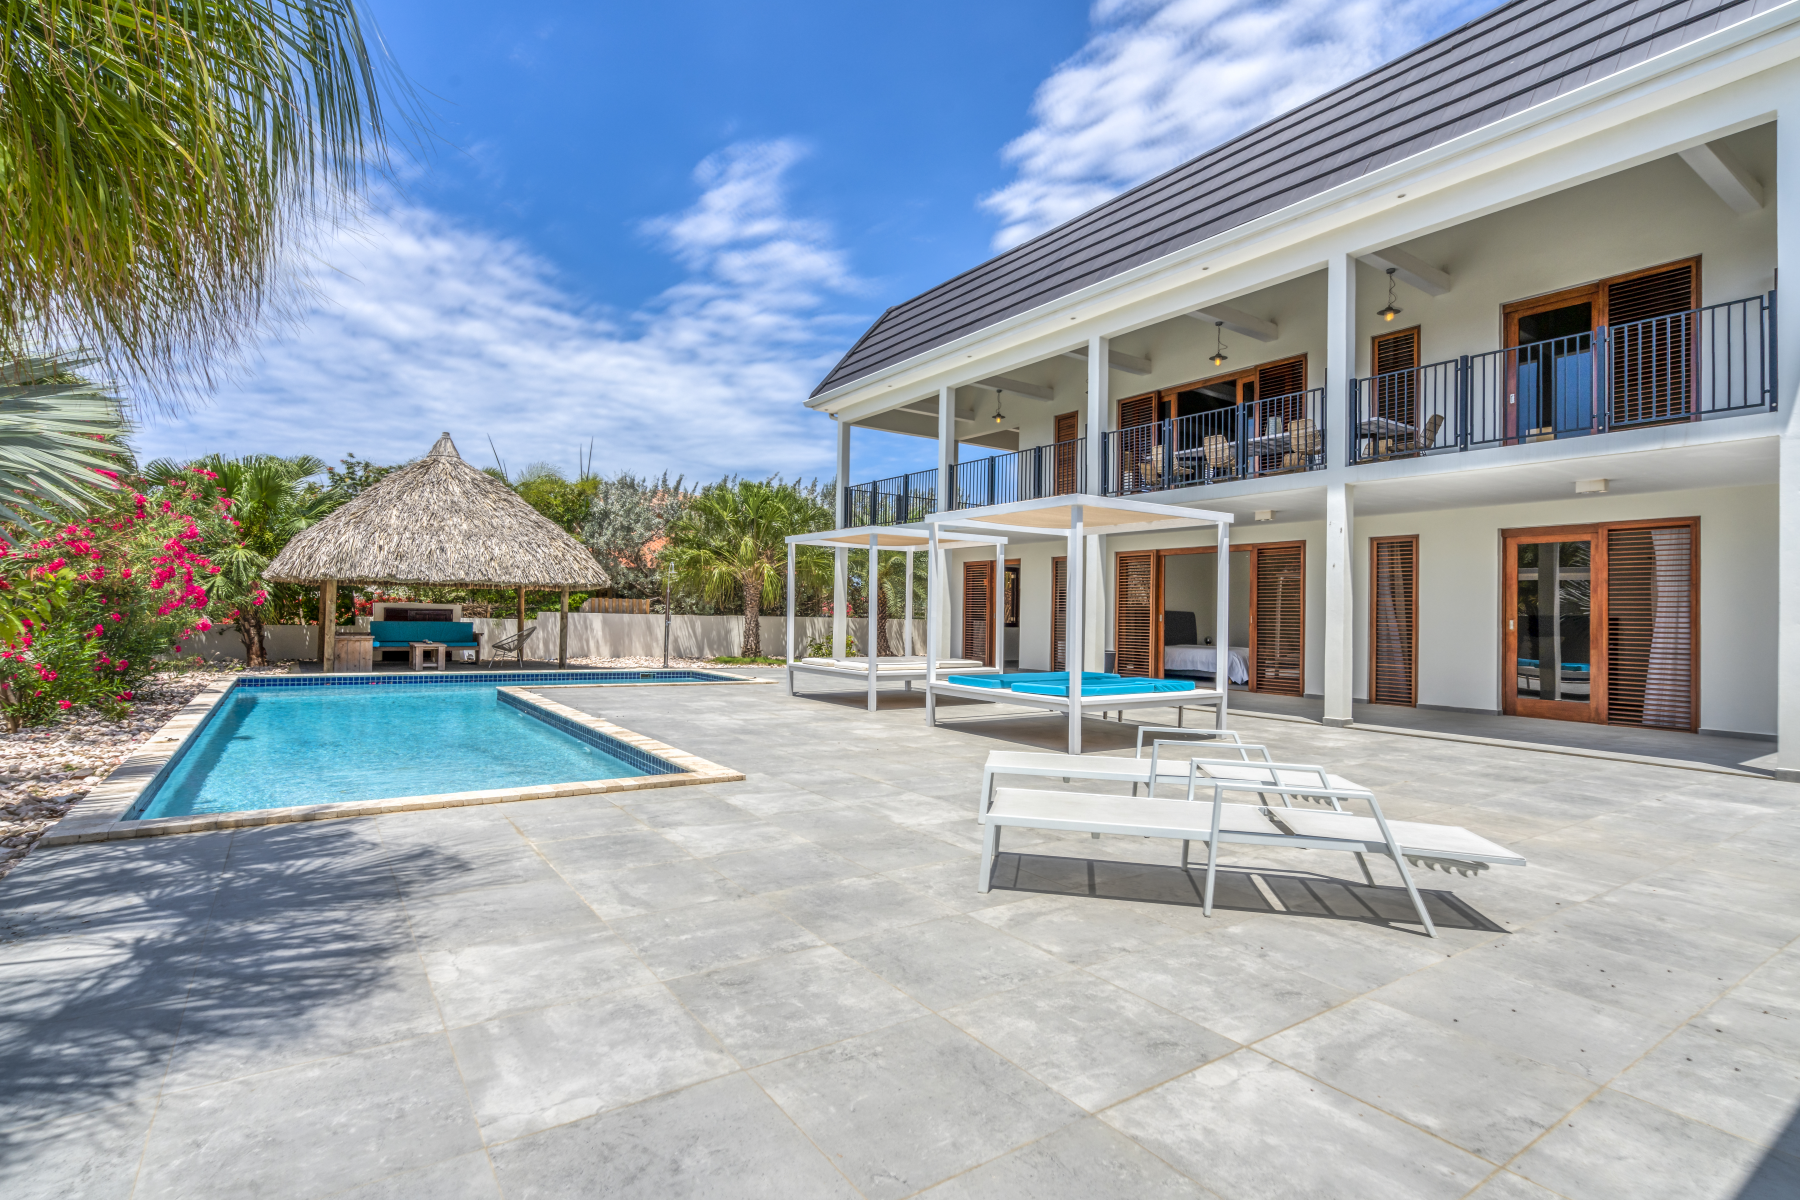 Multi-Family Home for Sale at Vista Royal Twin Villas N1 & N2 Willemstad, Curacao